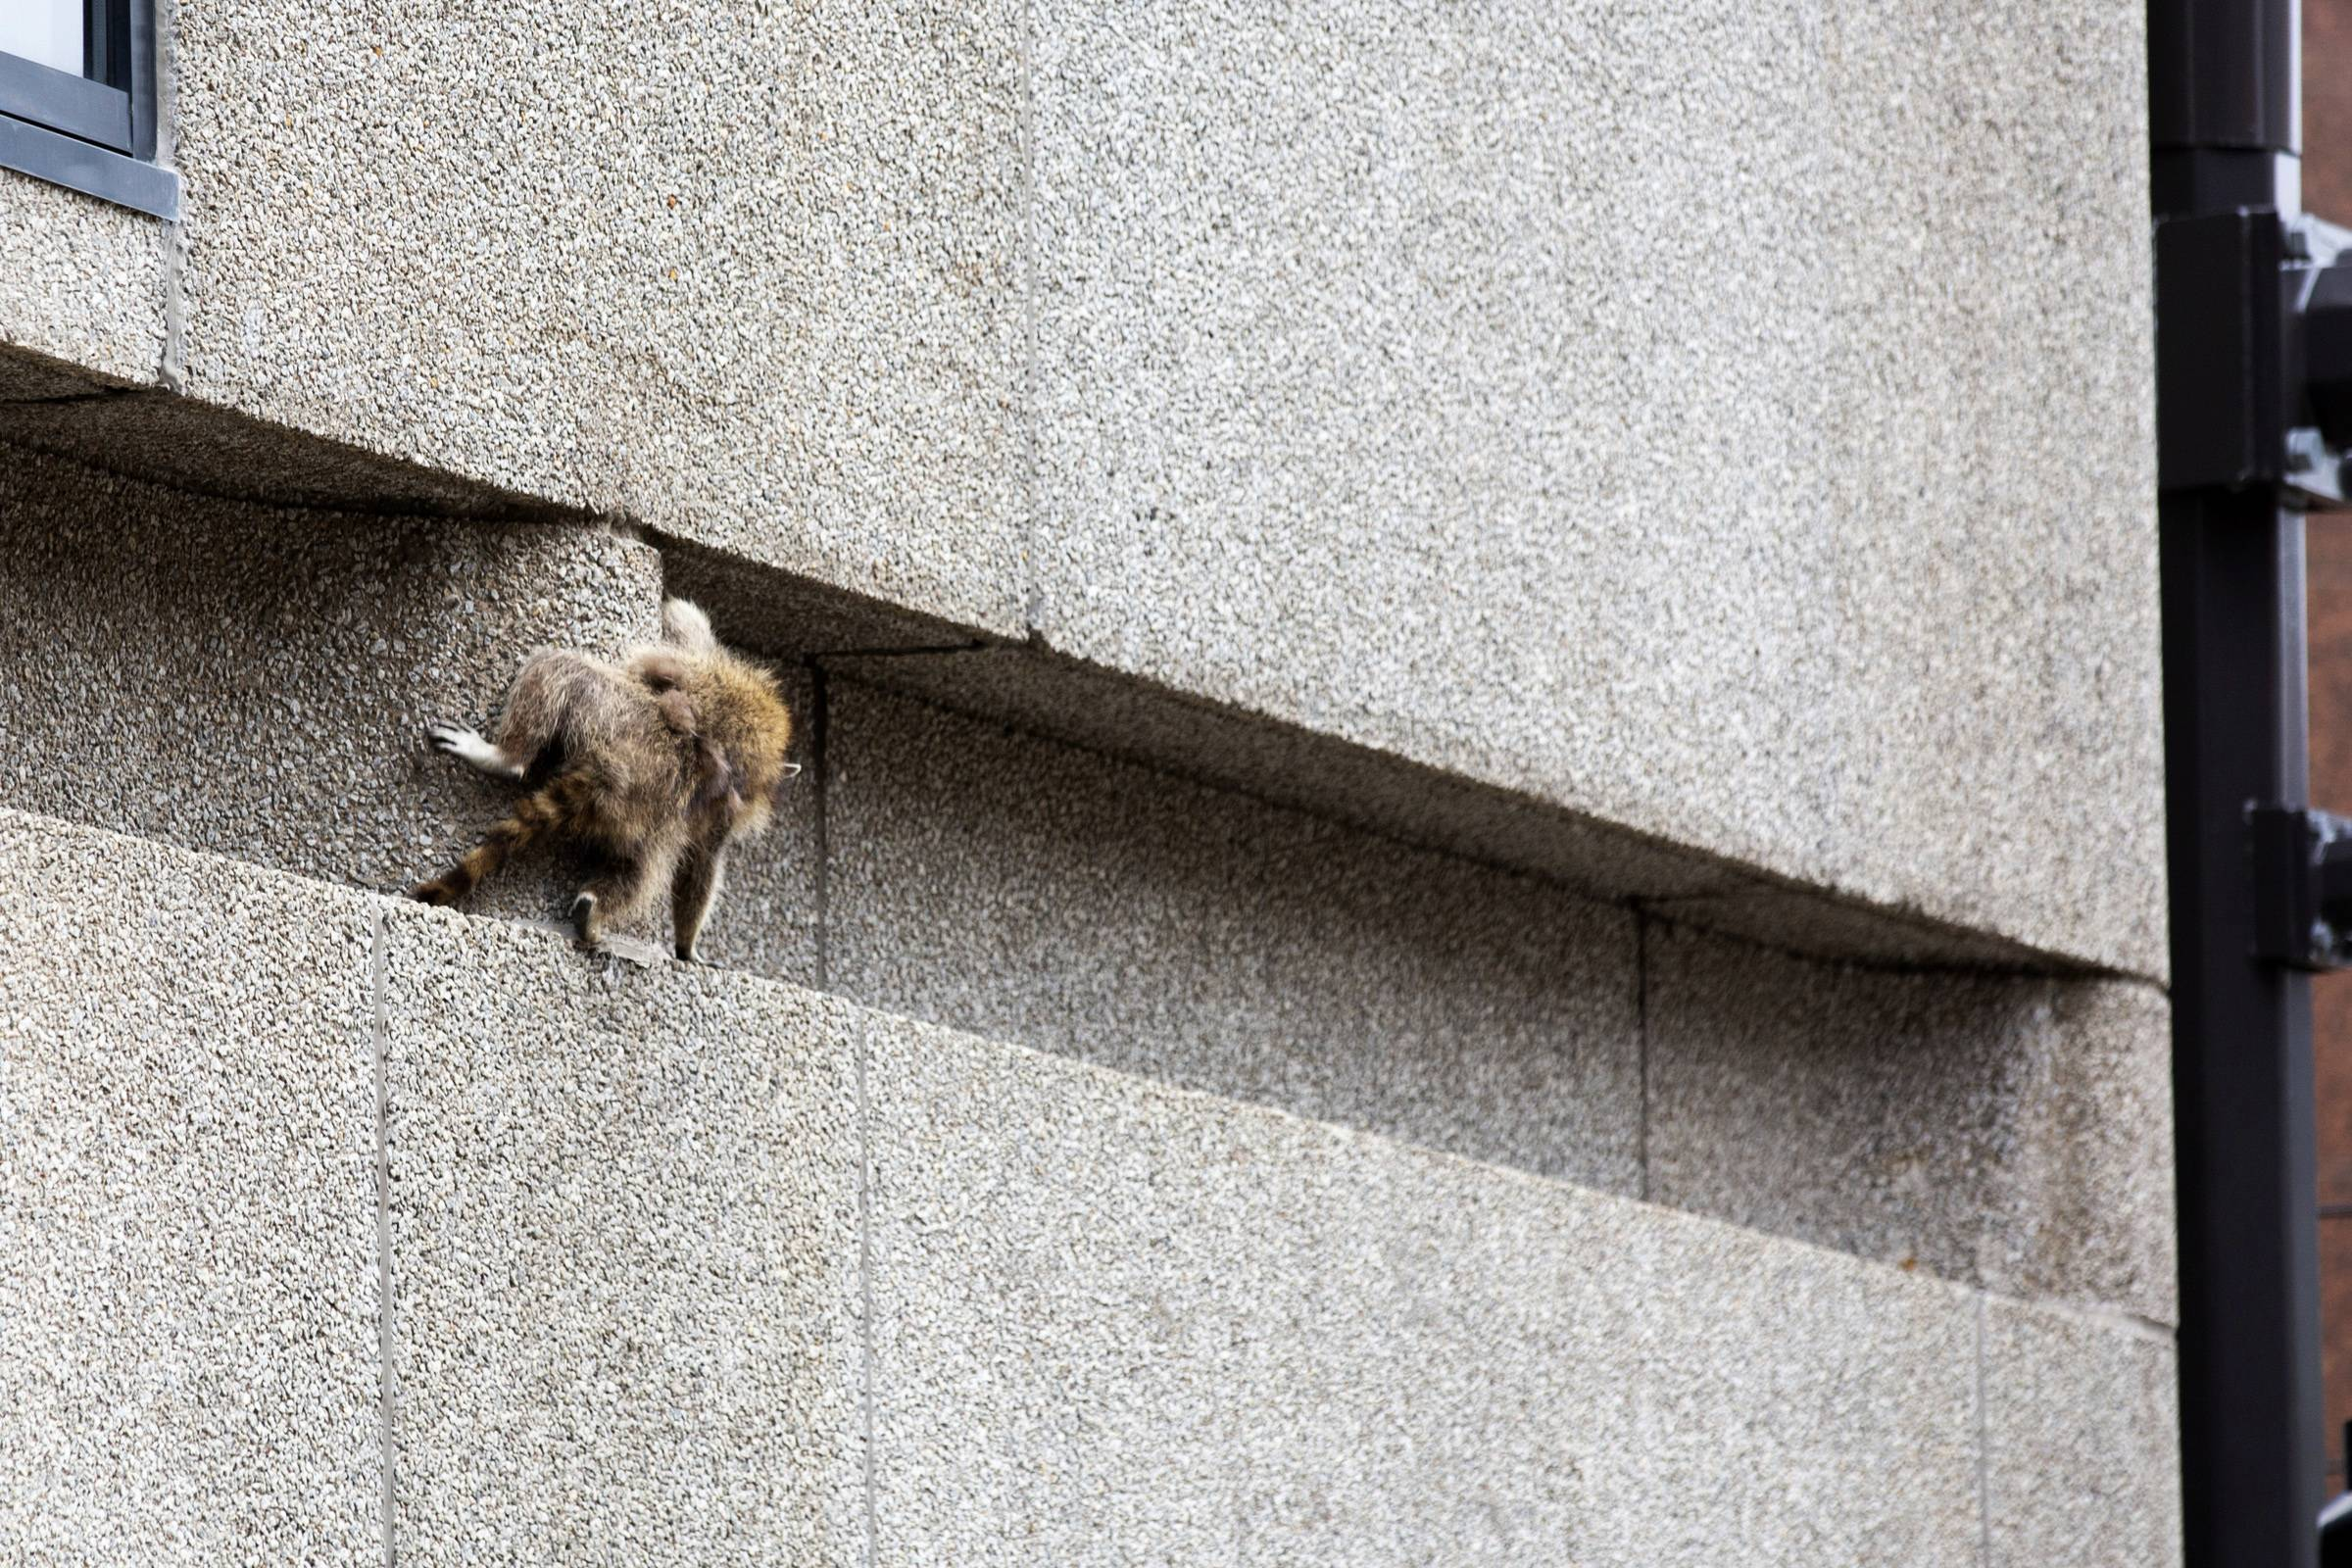 A raccoon scrambles along a ledge on the side of the Town Square building in downtown St. Paul.